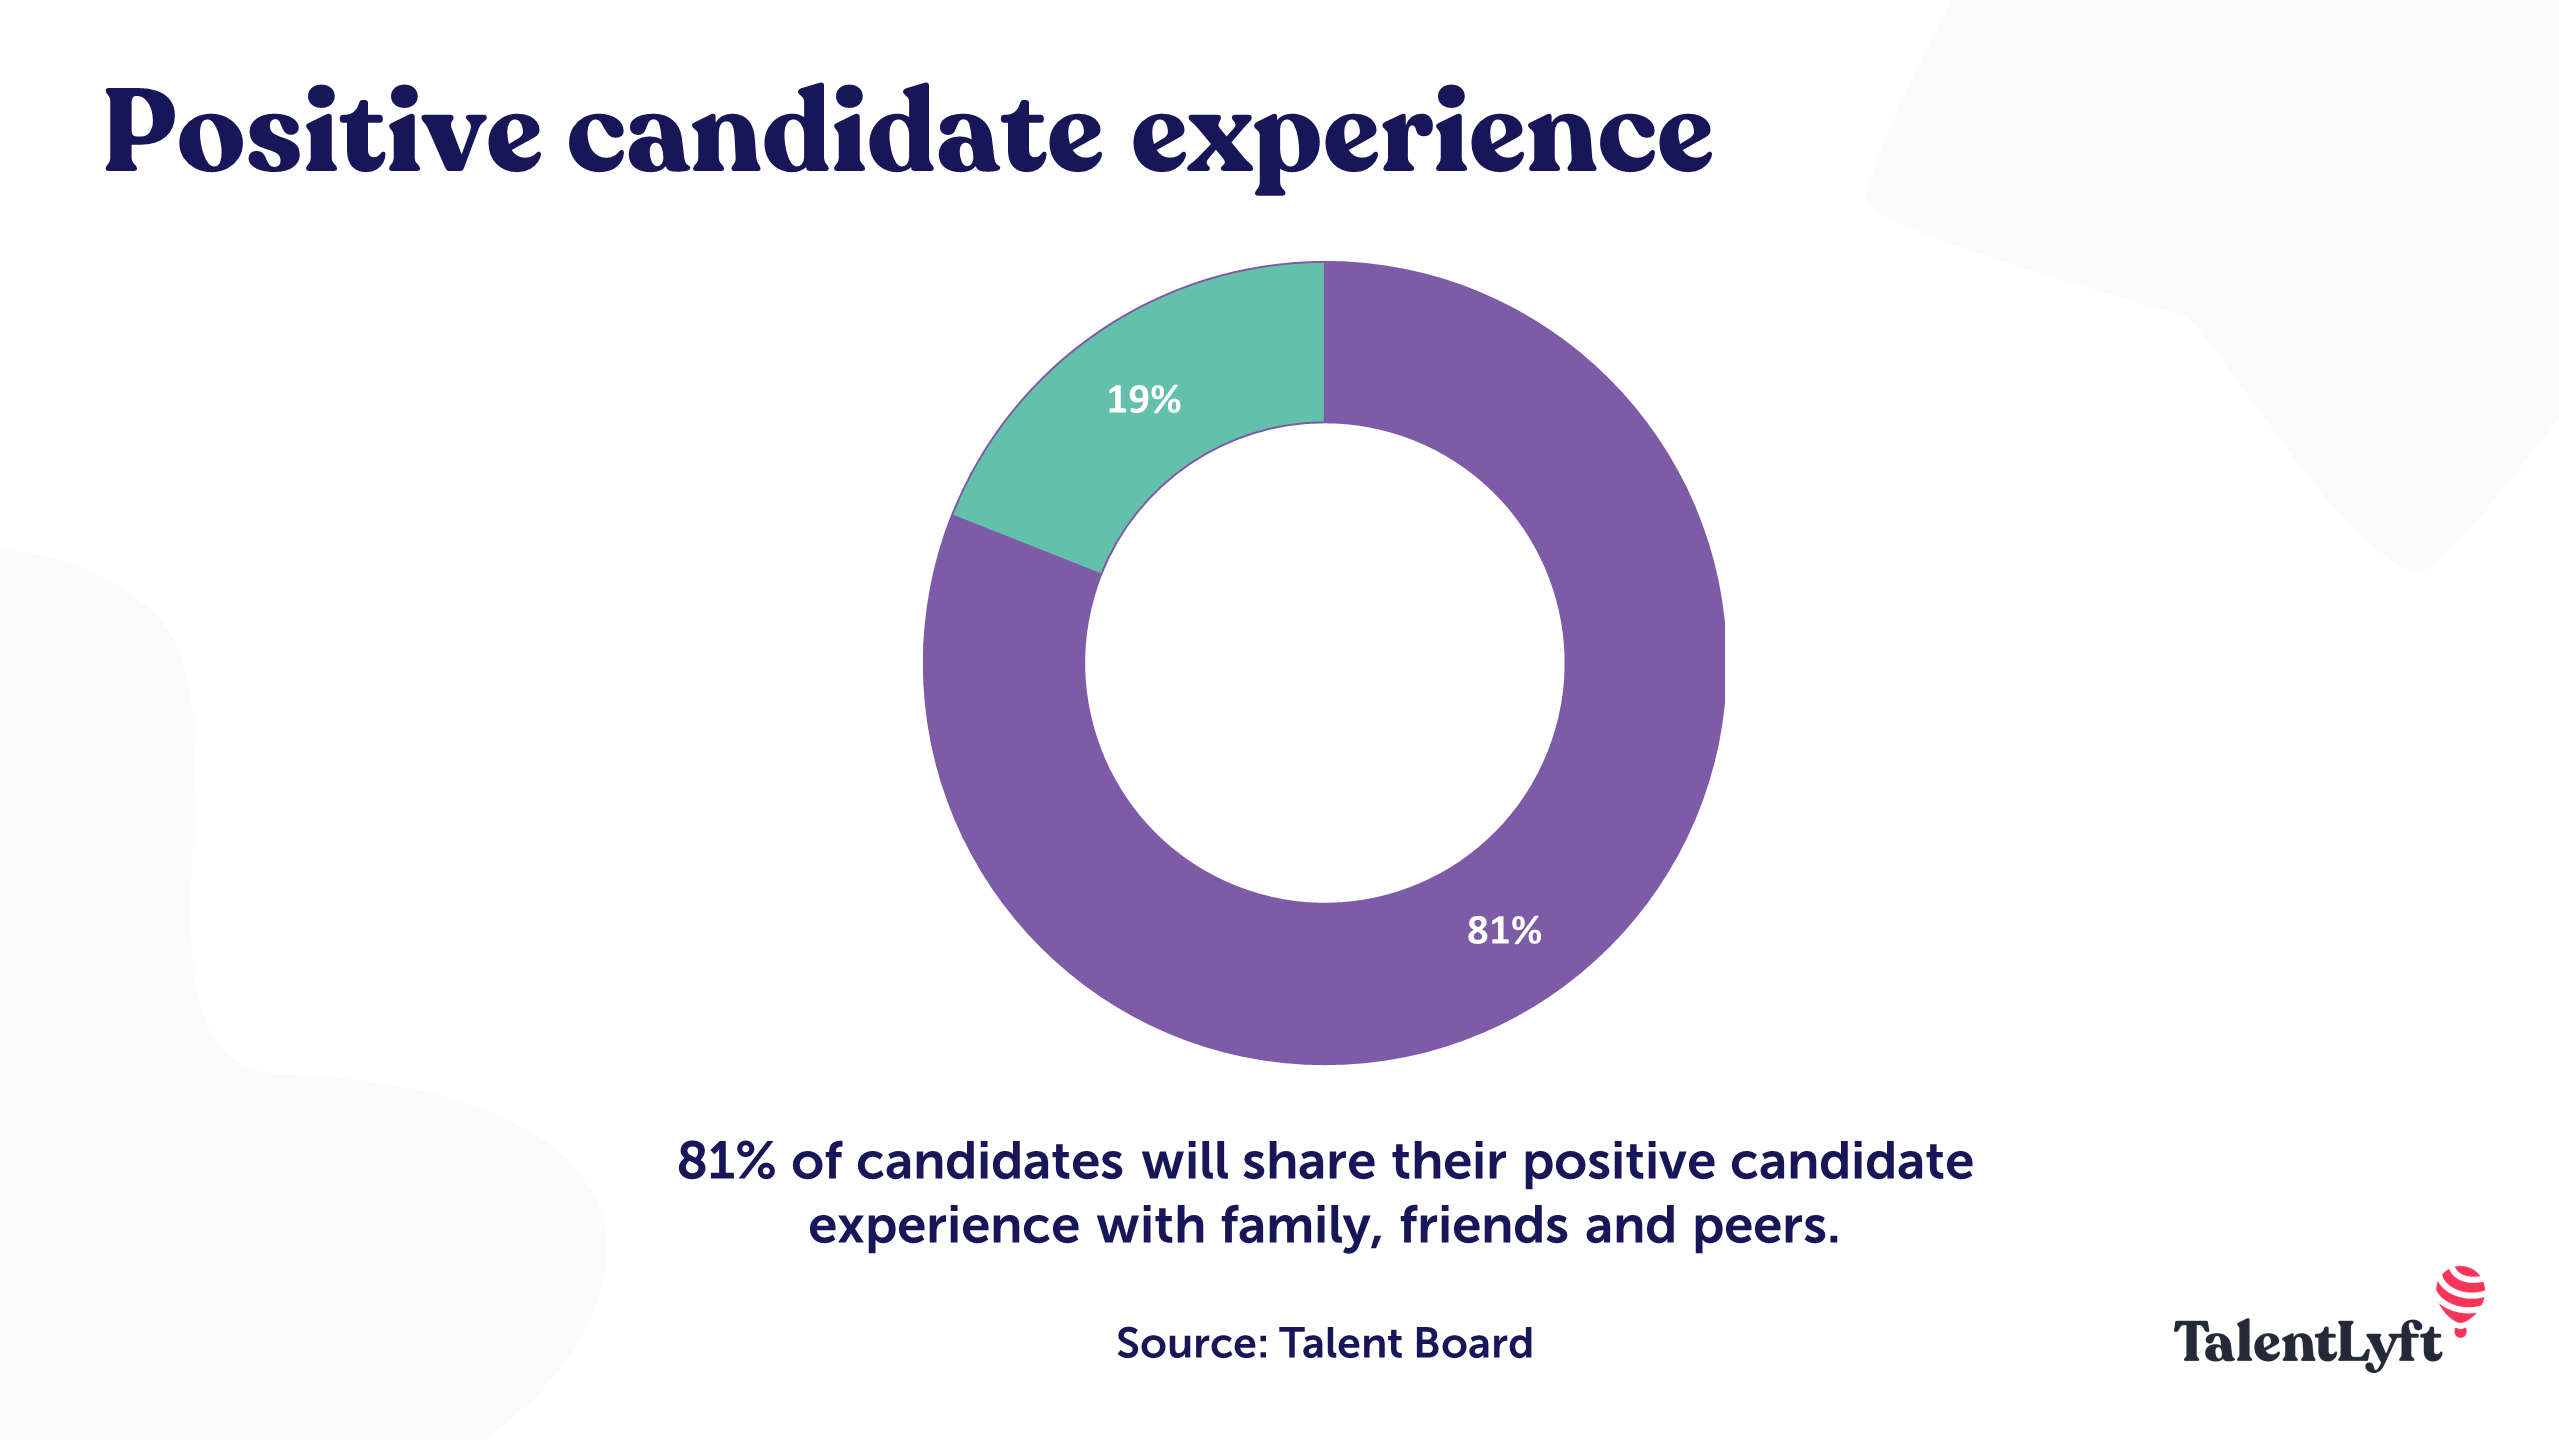 Positive candidate experience